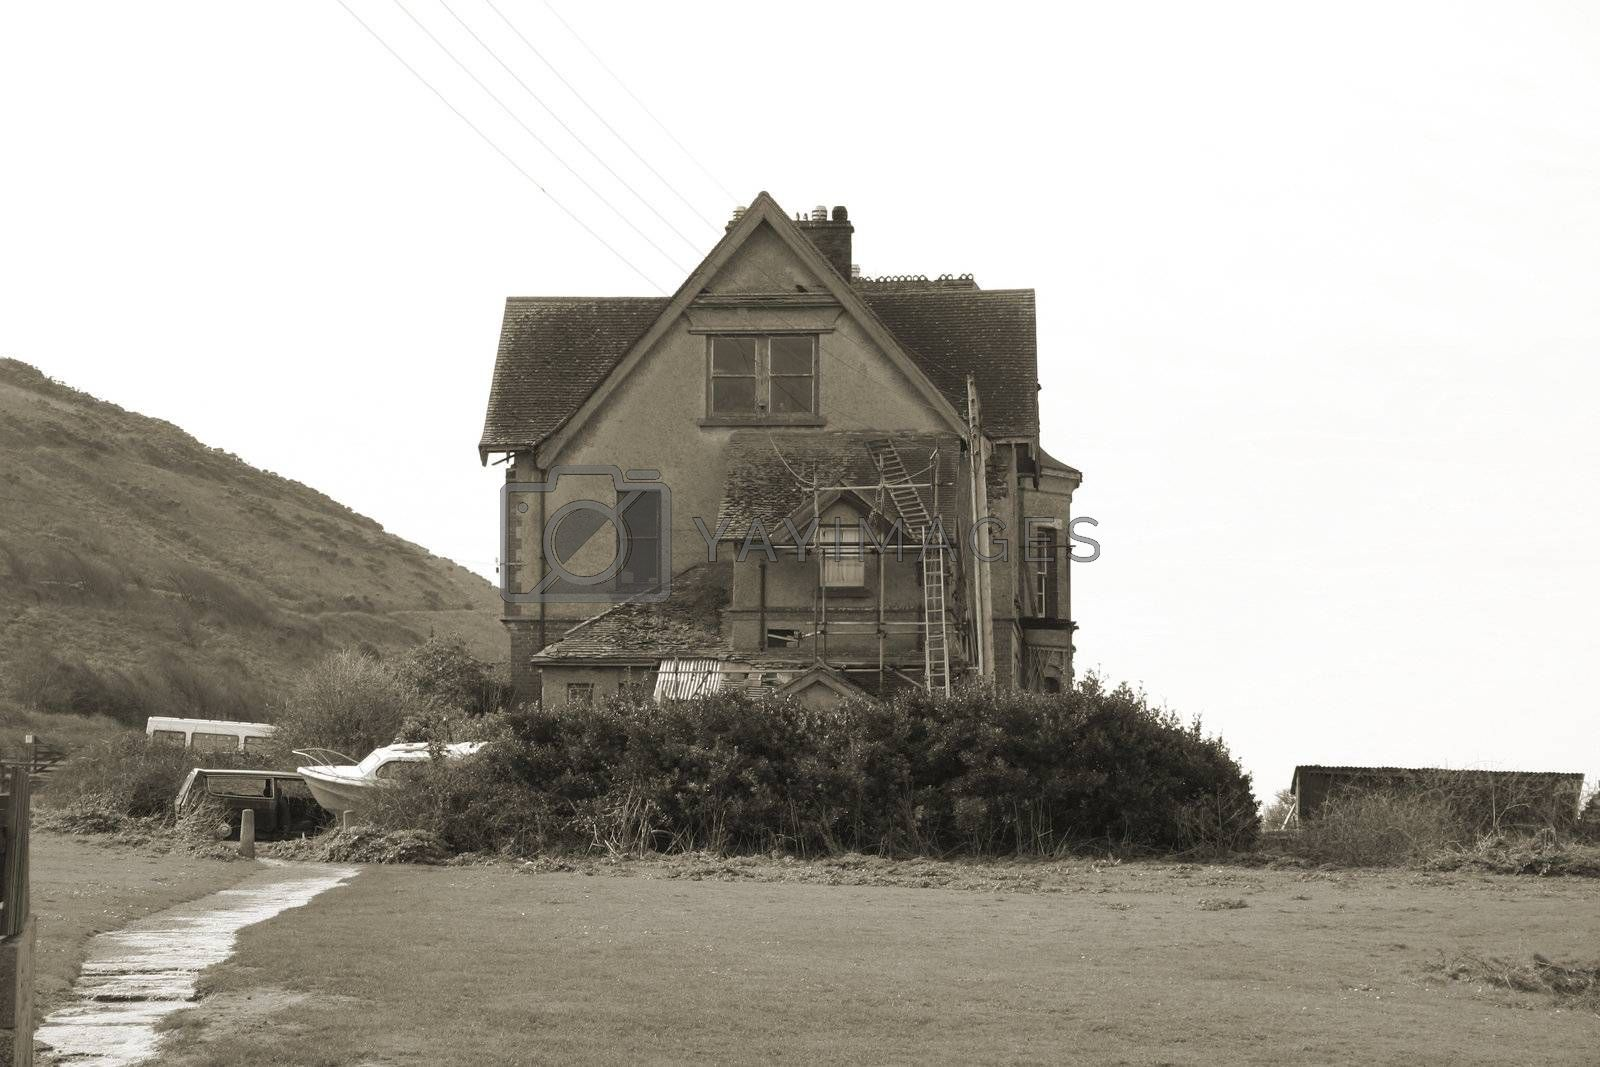 spooky old house by leafy